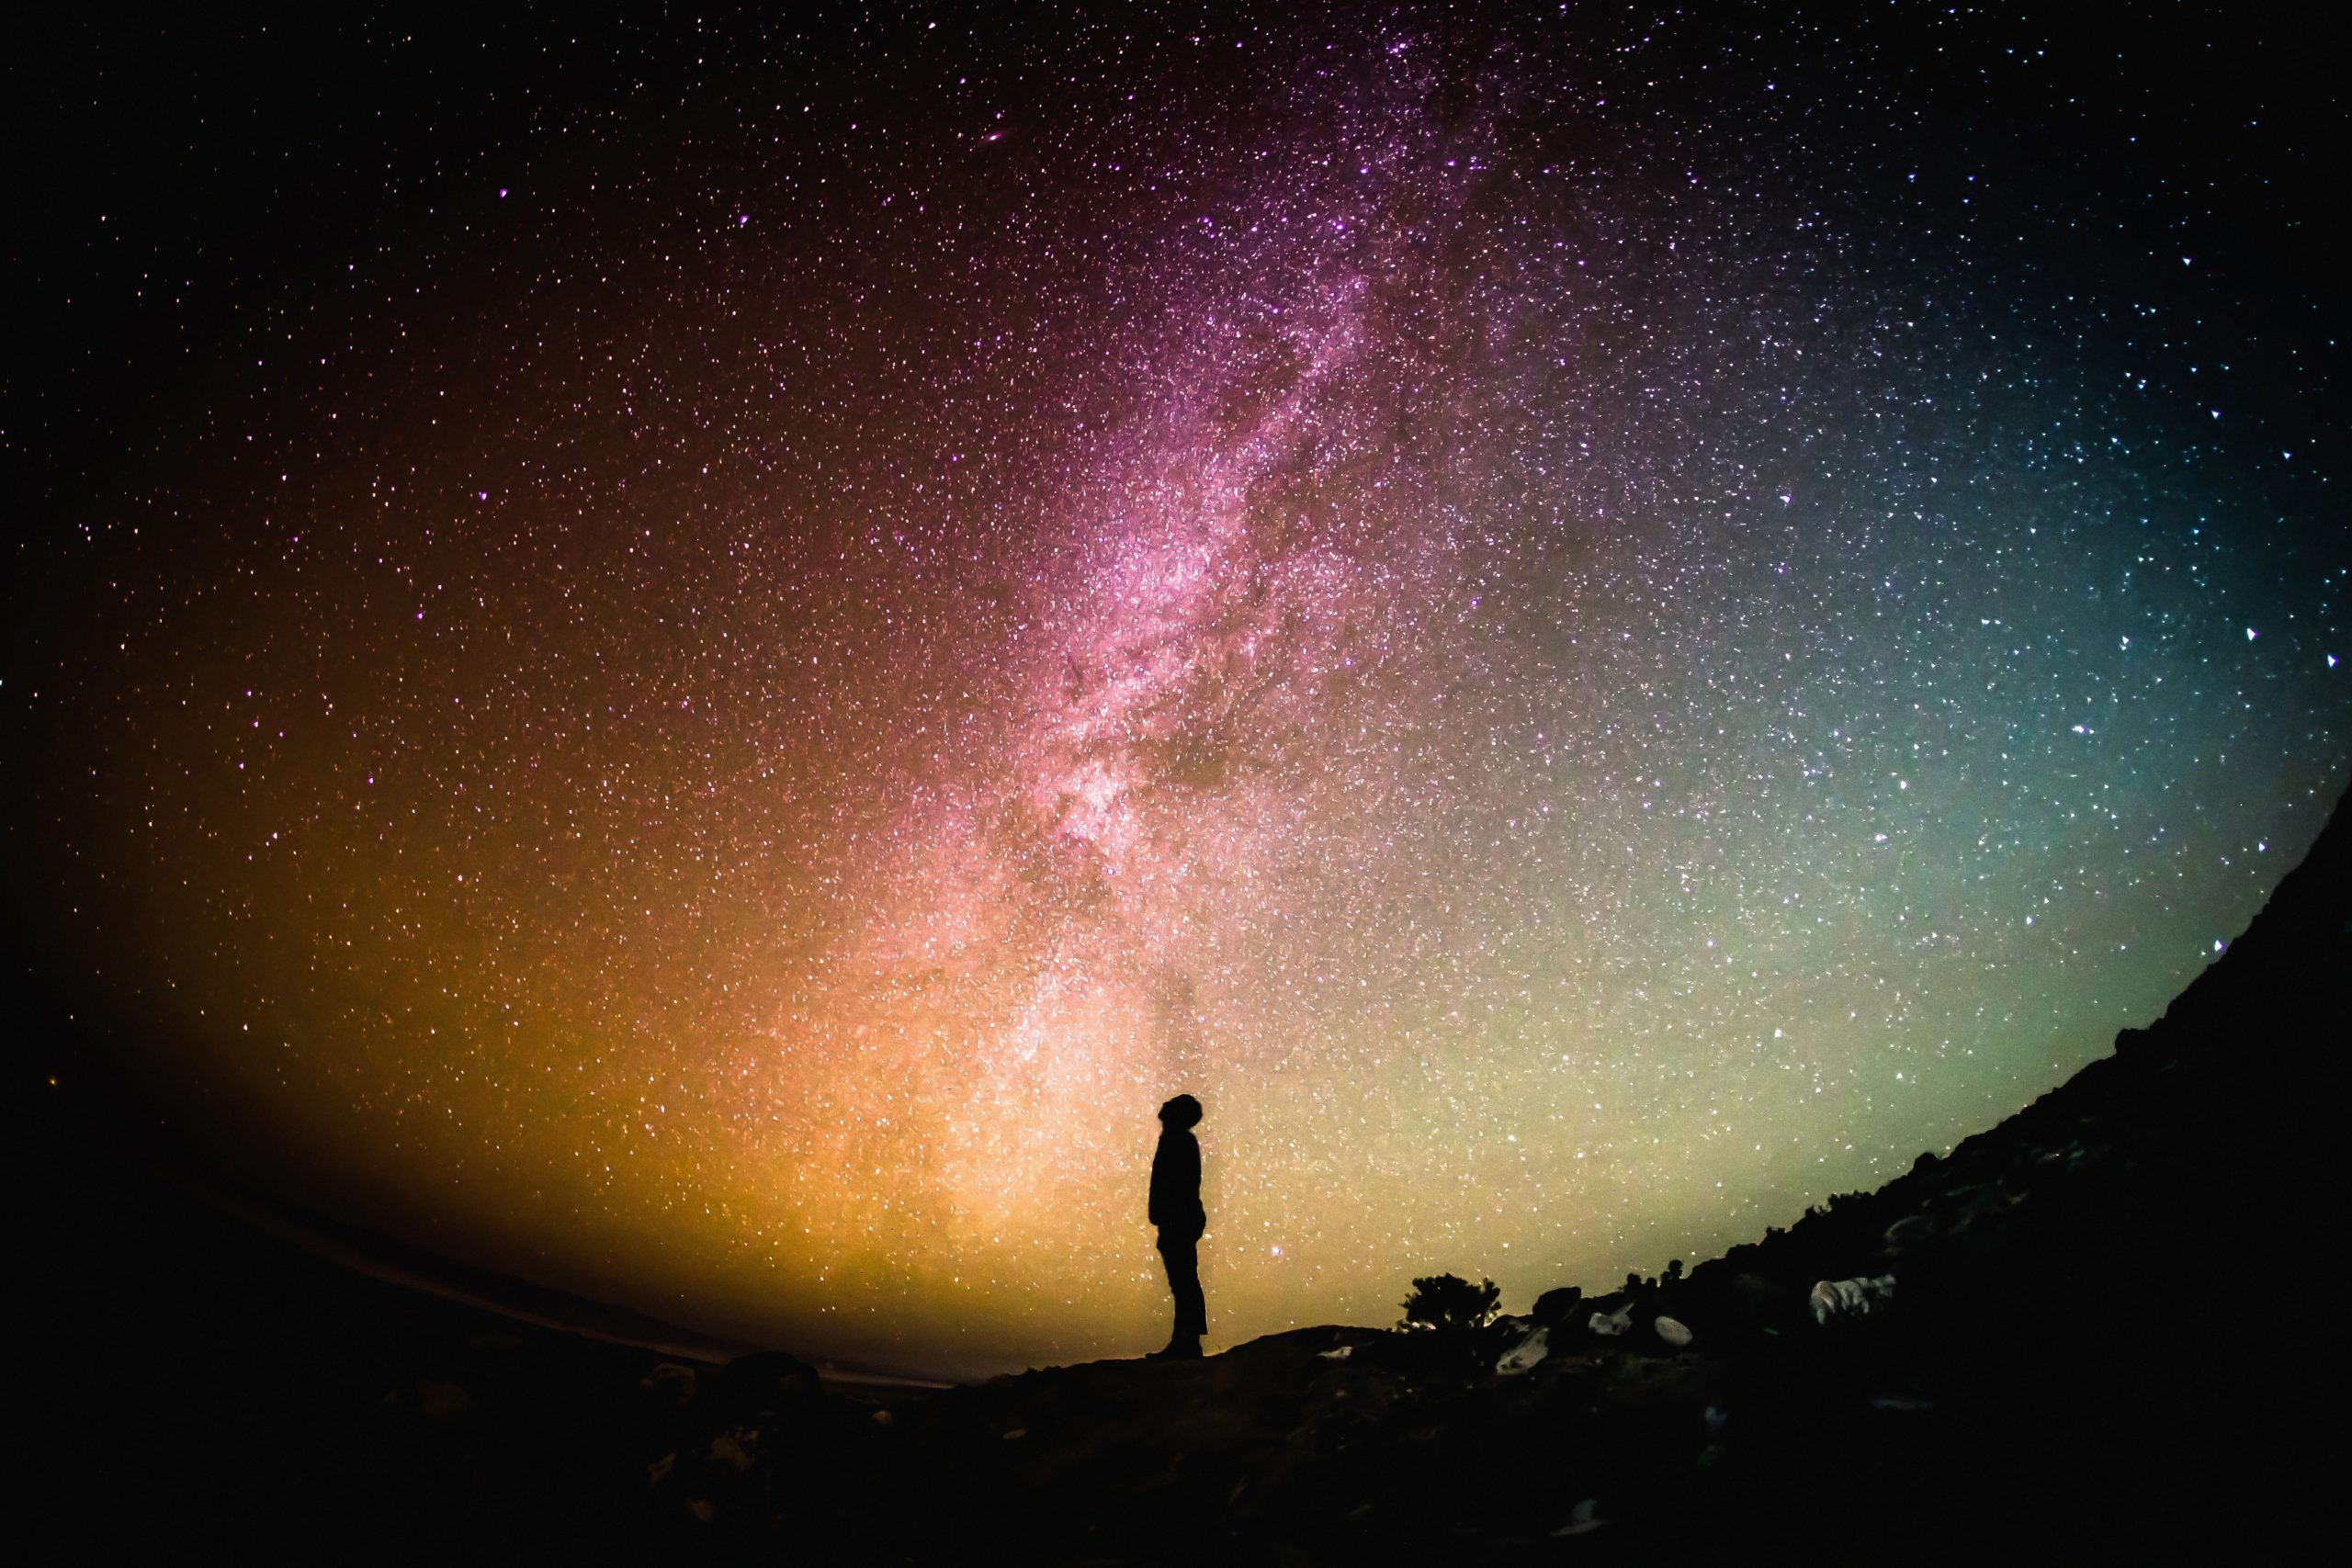 Discovering the glories of the night sky with the naked eye